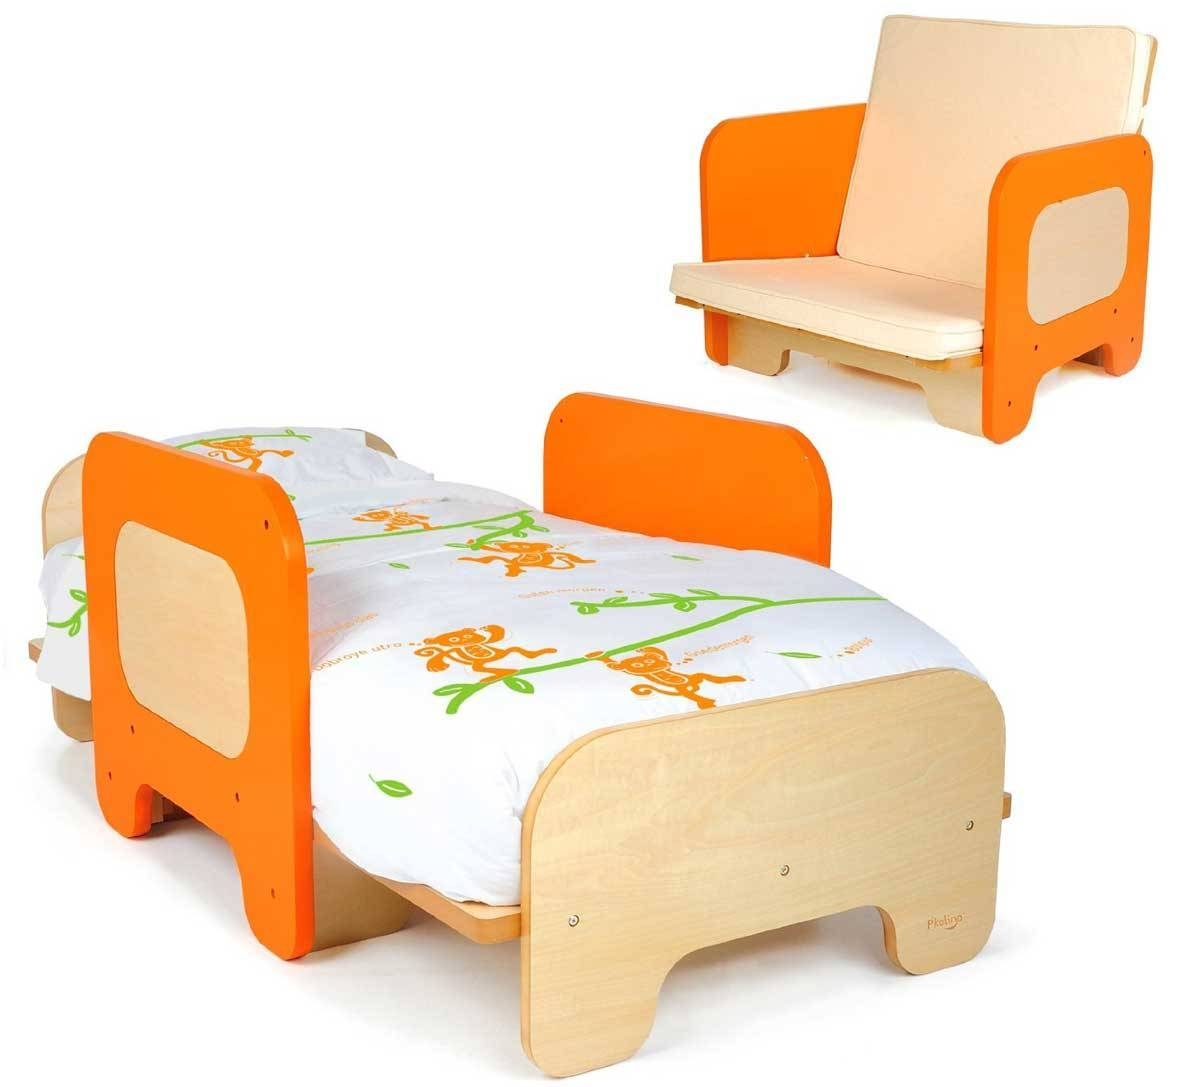 Interior Design Fa6A7Fad A054 4D6A 98C8 Throughout Childrens Sofa Bed Chairs (View 10 of 15)